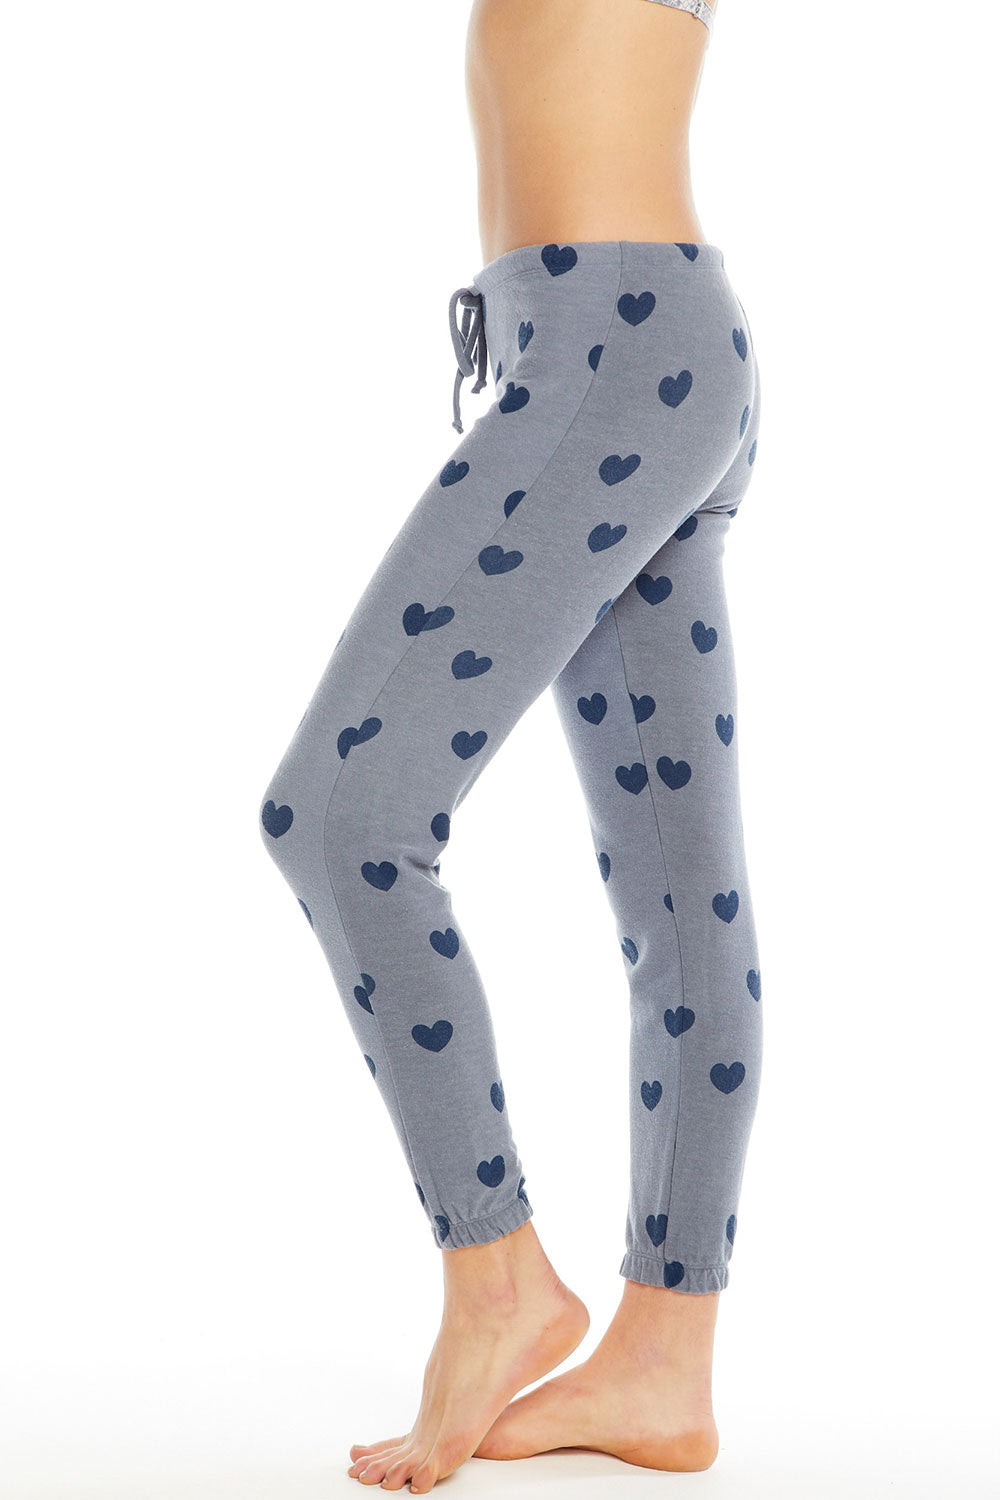 Blue Hearts Pant WOMENS chaserbrand4.myshopify.com